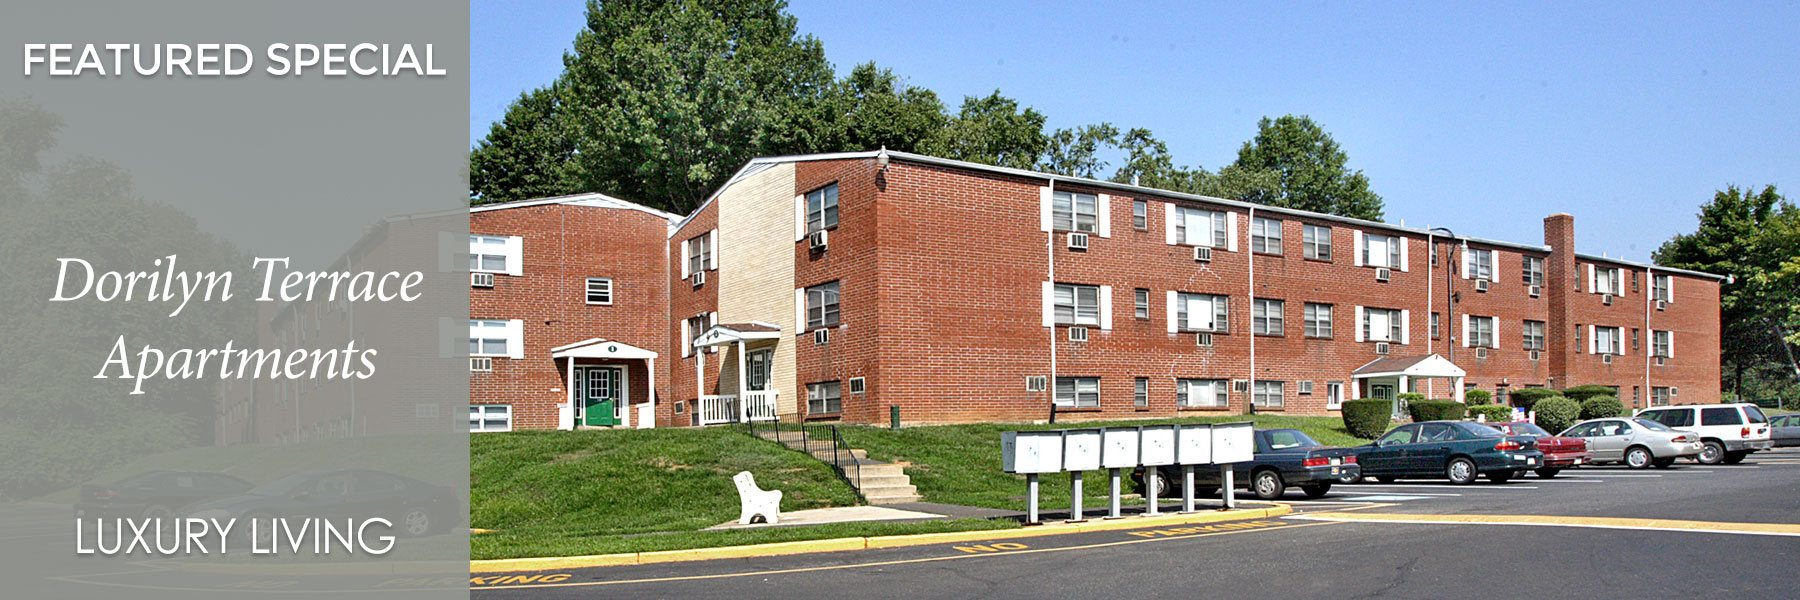 Dorilyn Terrace Apartments For Rent in Langhorne, PA Specials